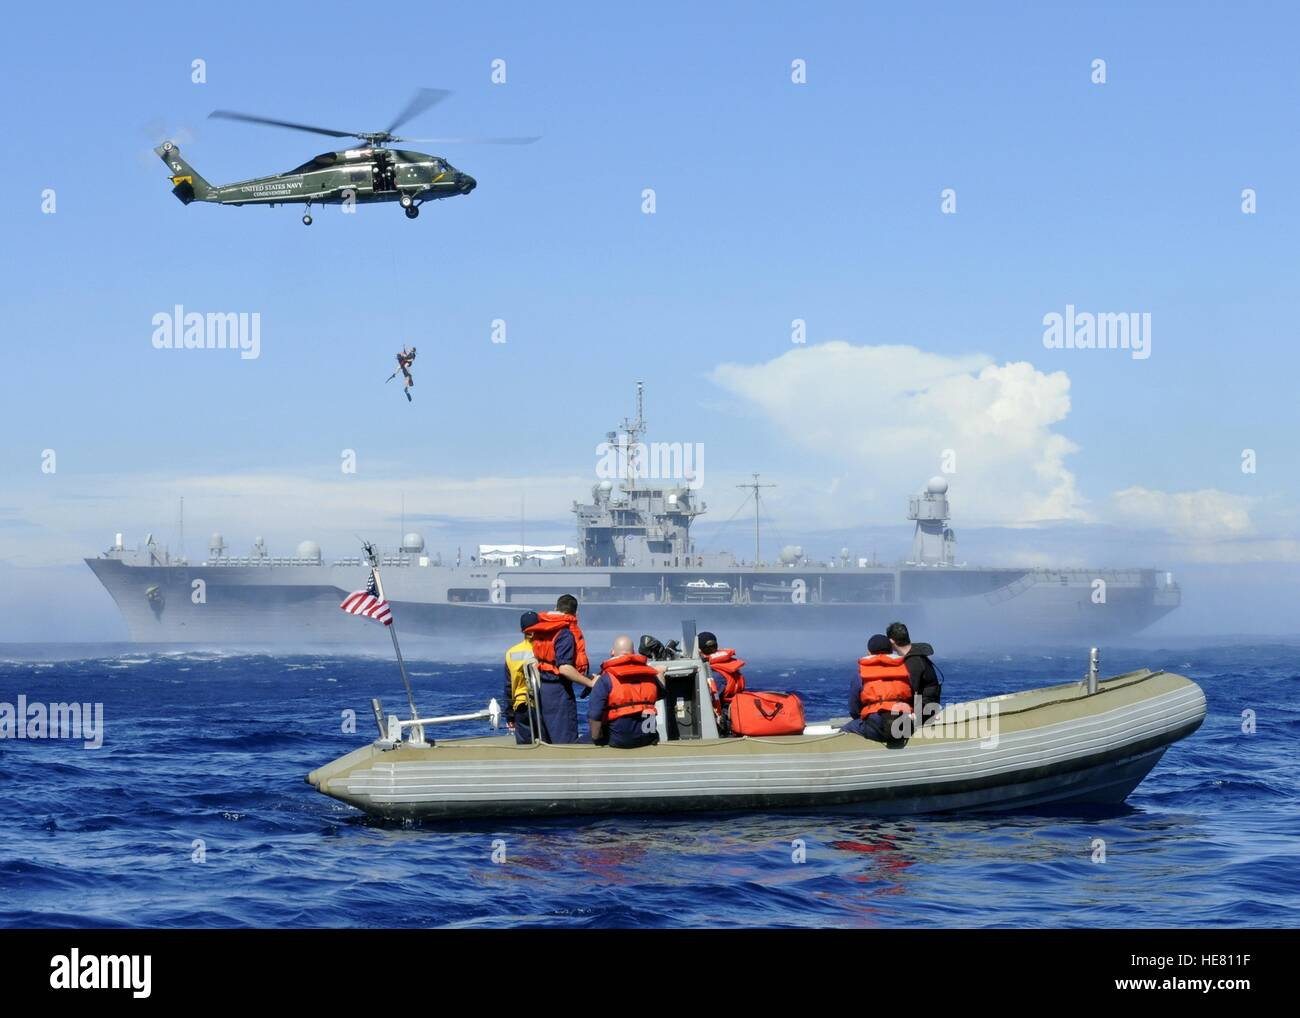 U.S. sailors on an inflatable raft watch a helicopter air lift a search and rescue swimmer from the ocean during - Stock Image